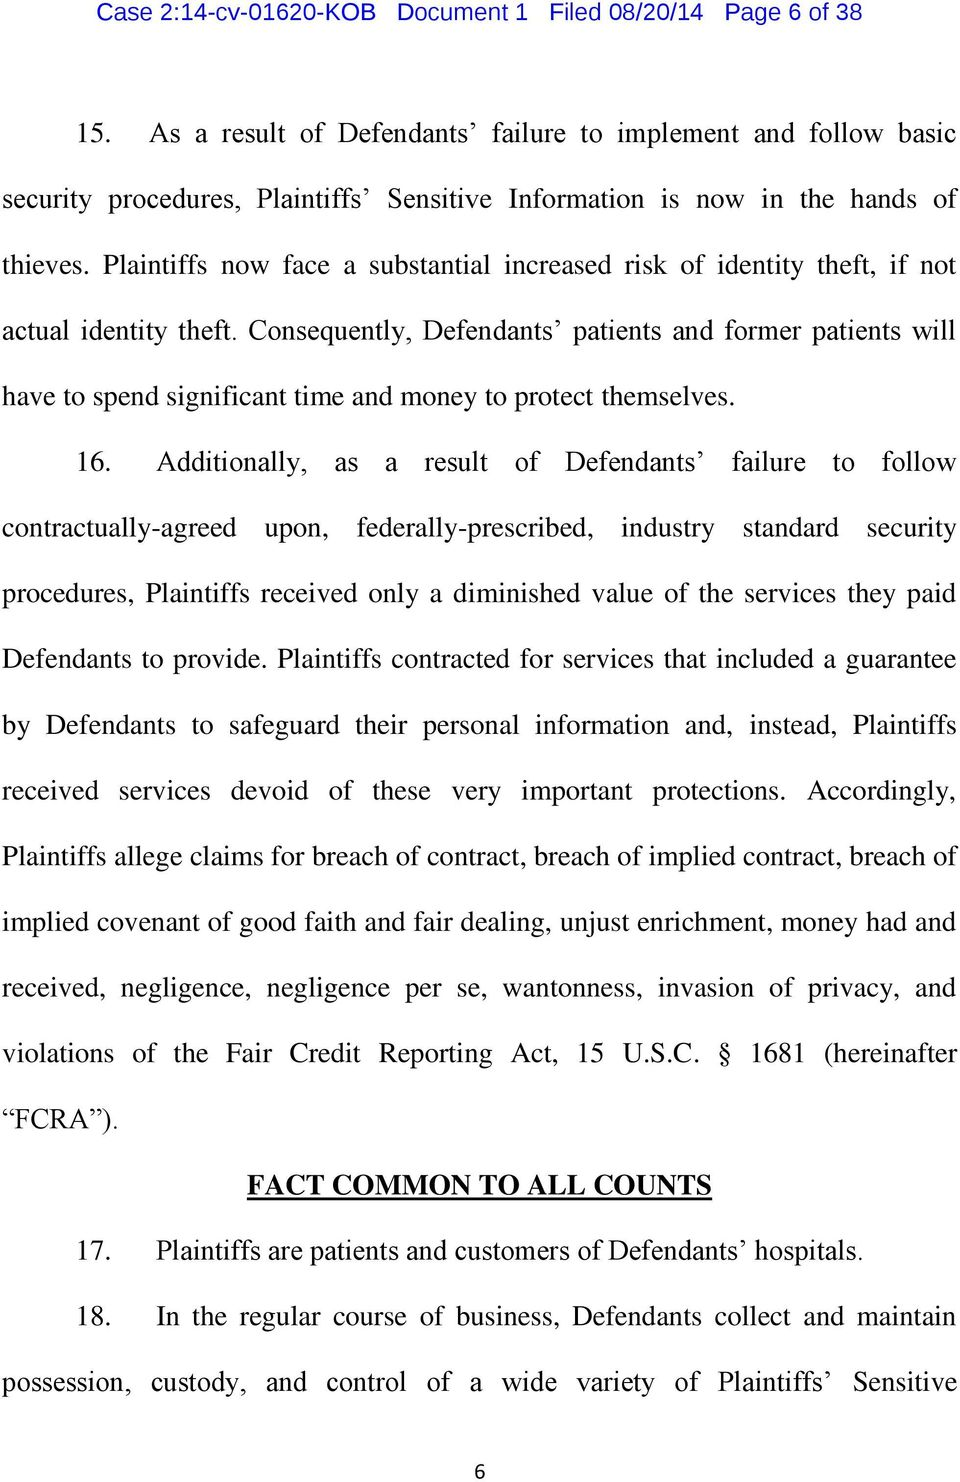 Plaintiffs now face a substantial increased risk of identity theft, if not actual identity theft.